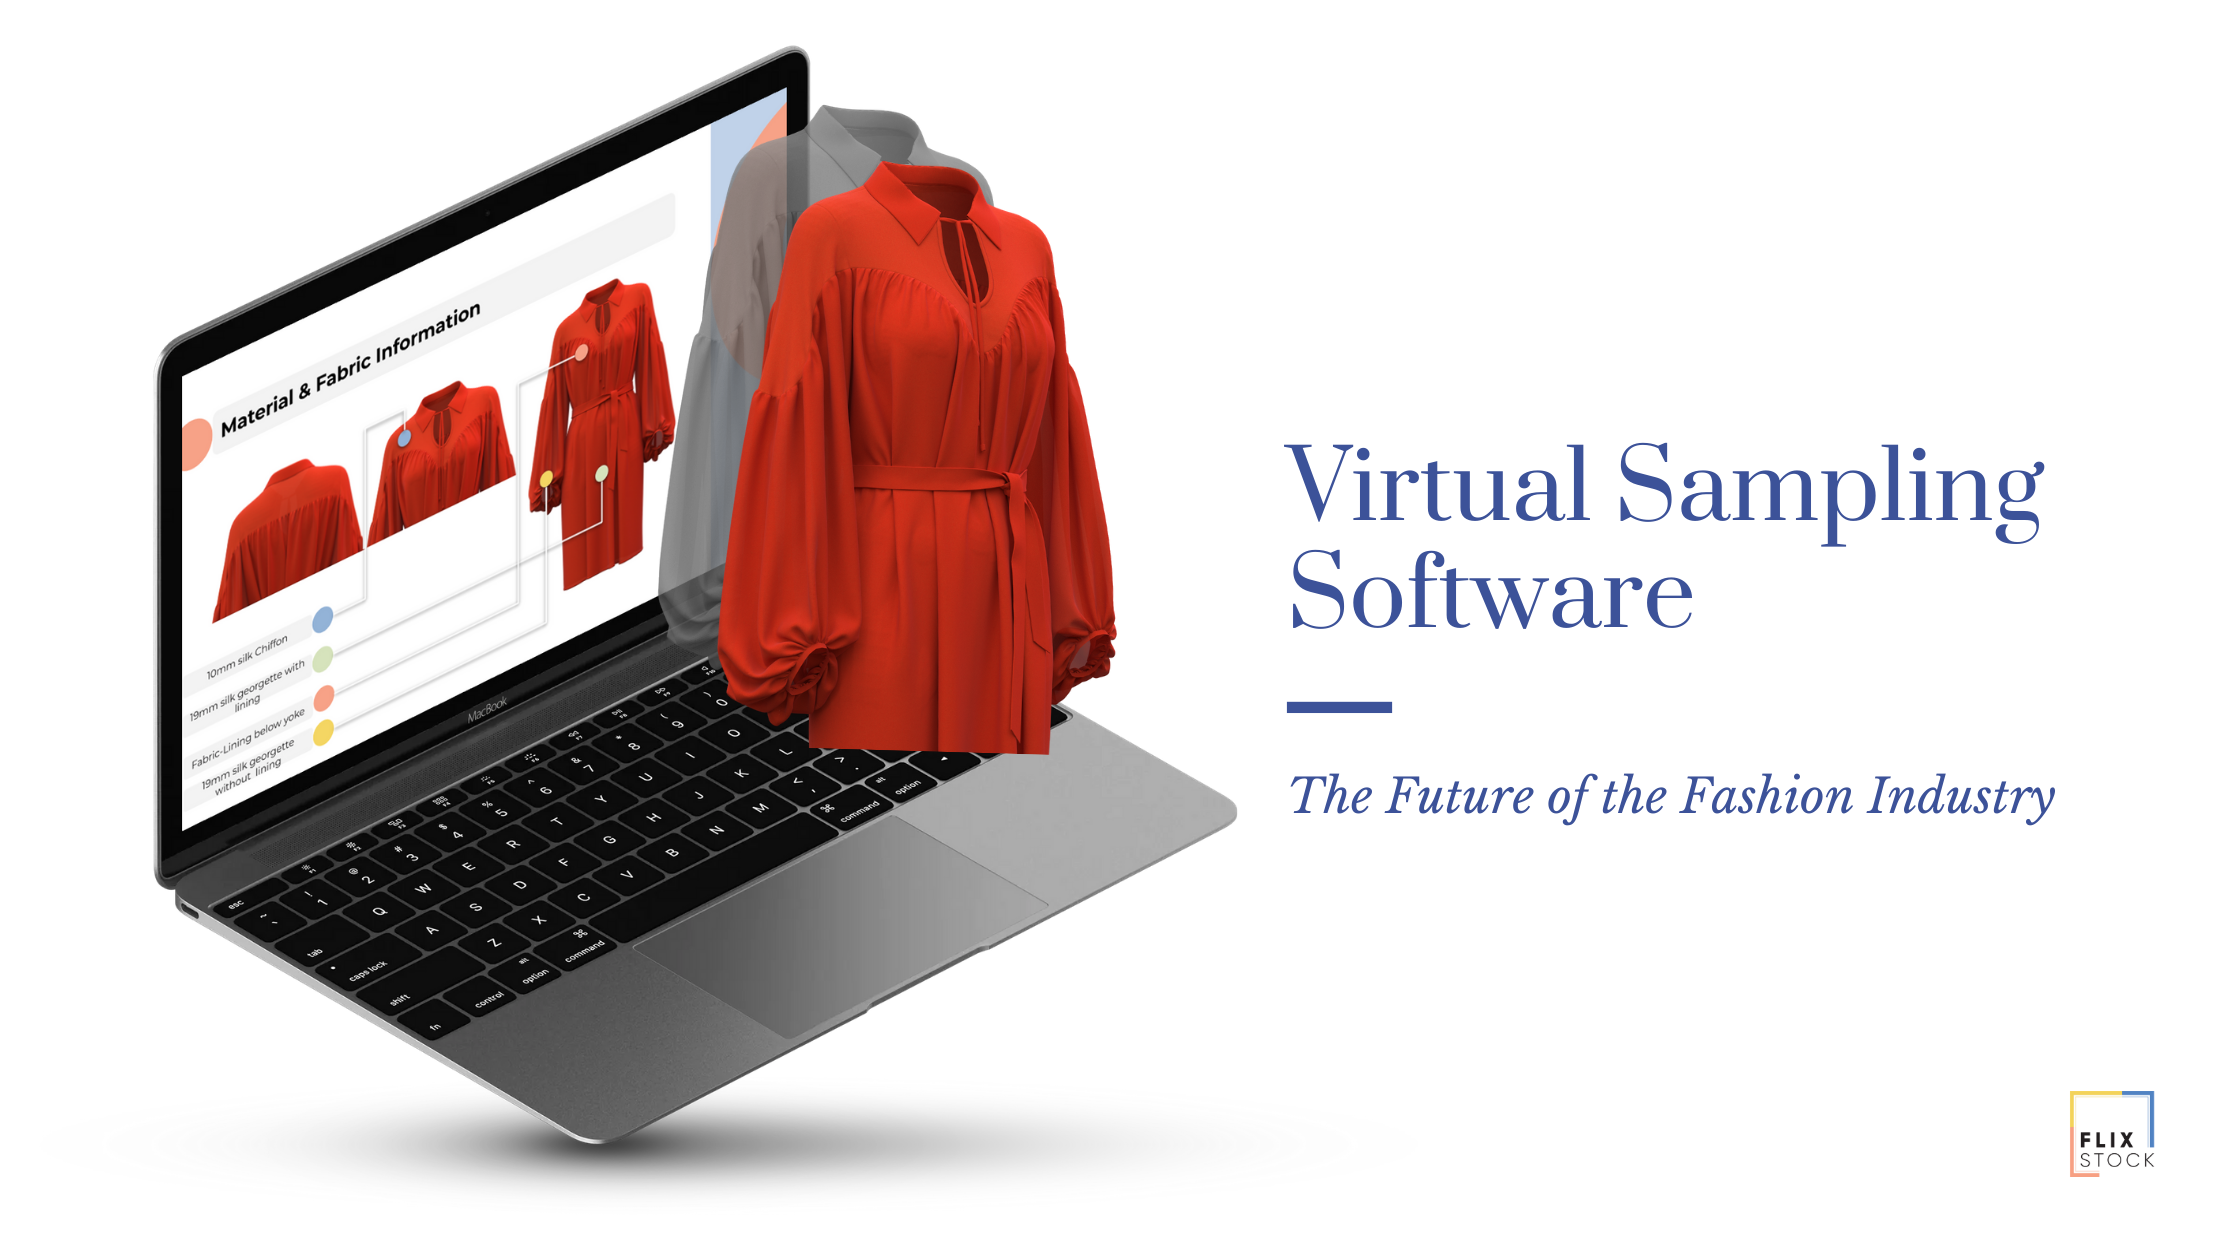 Virtual Sampling – The Future of the Fashion Industry